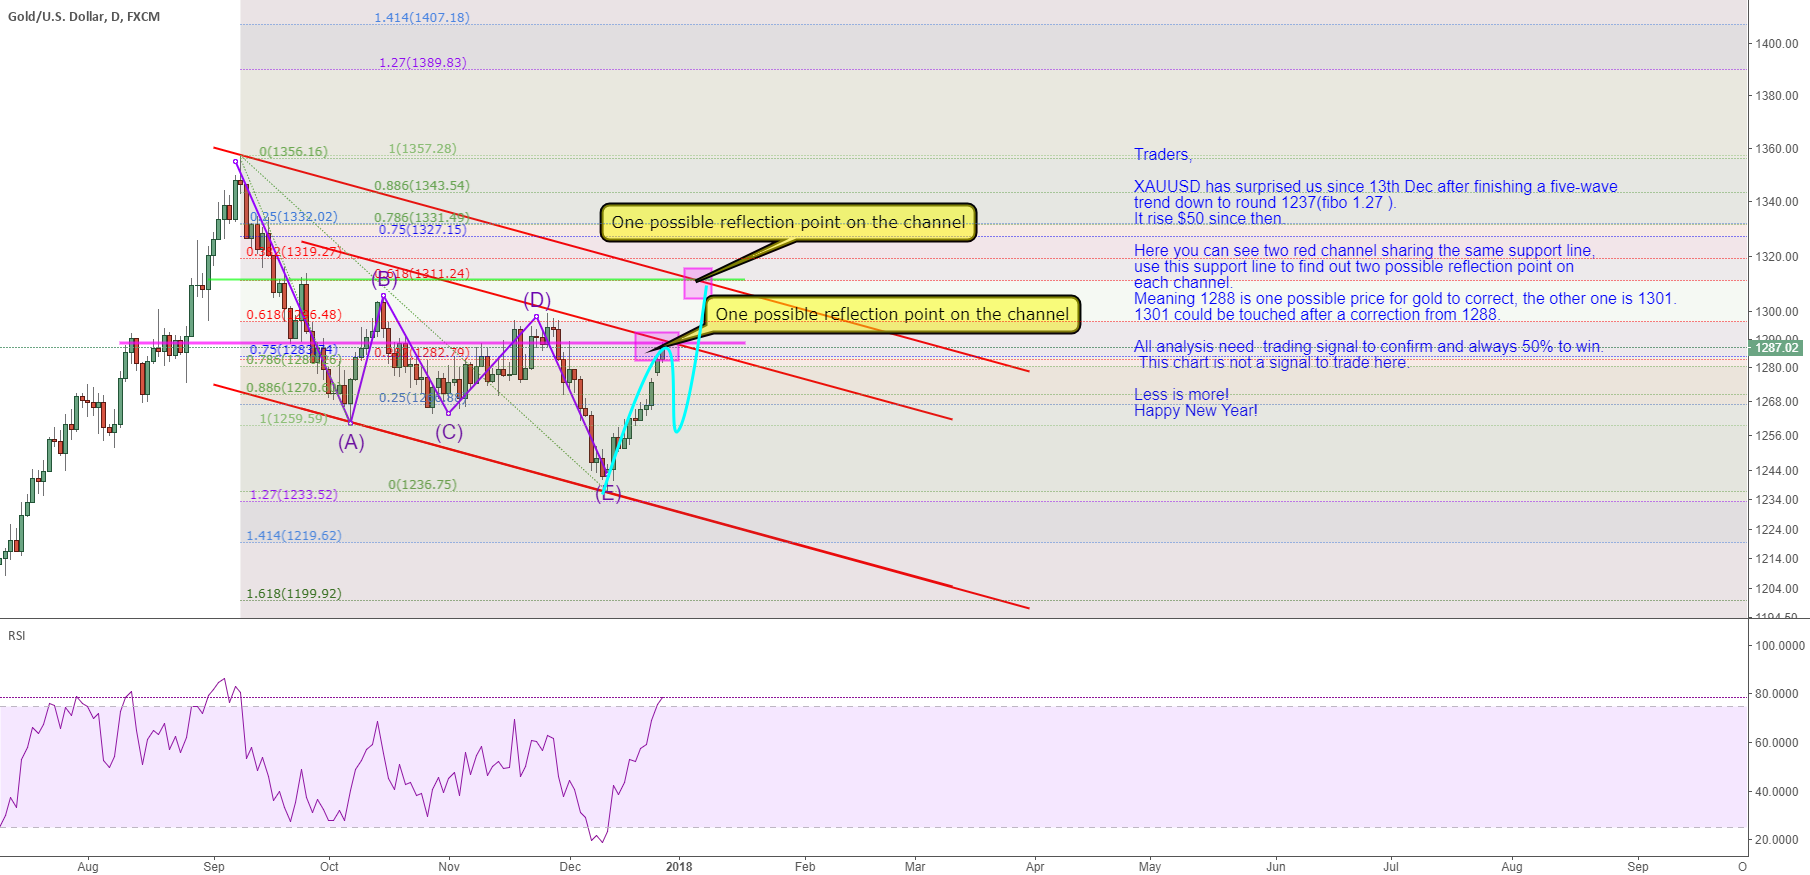 XAUUSD:1300 is possible for next step